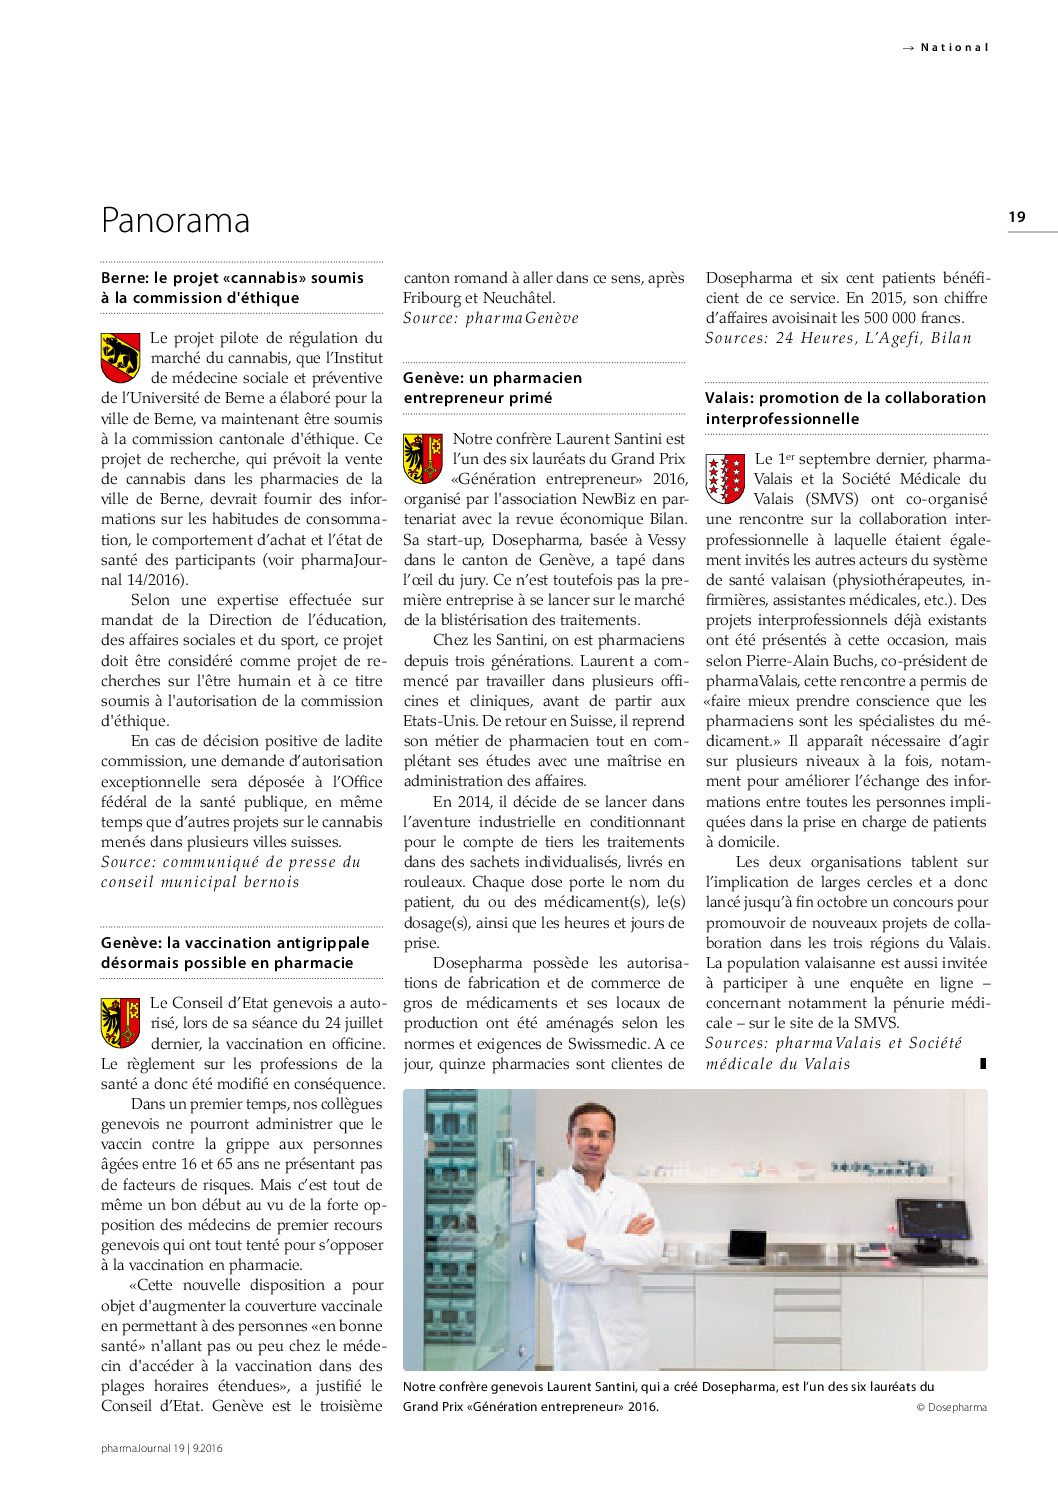 Le Journal des pharmaciens